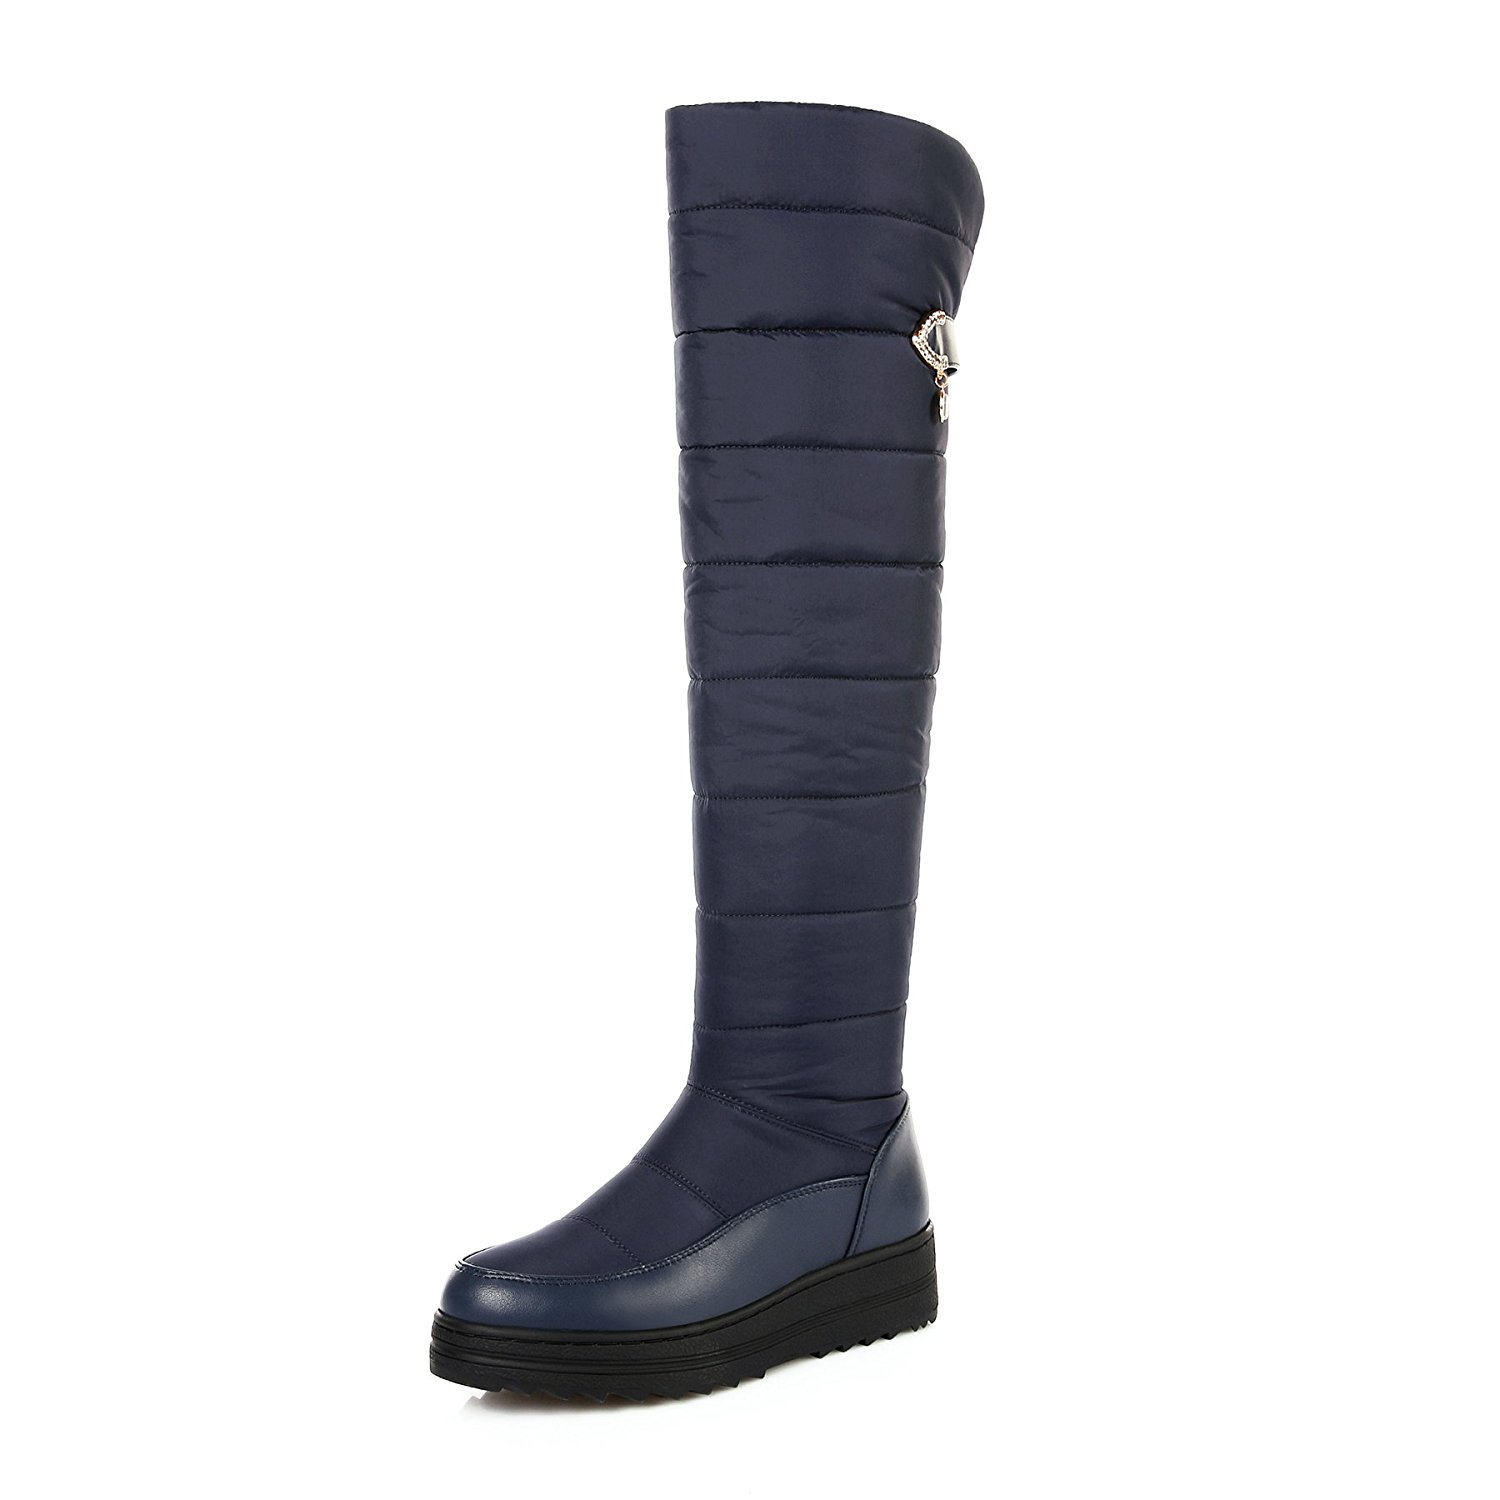 082518bea Get Quotations · CHENSIR9 Women Long Warm Snow Boots Black Over The Knee Boots  Womens Thigh High Boots Platform